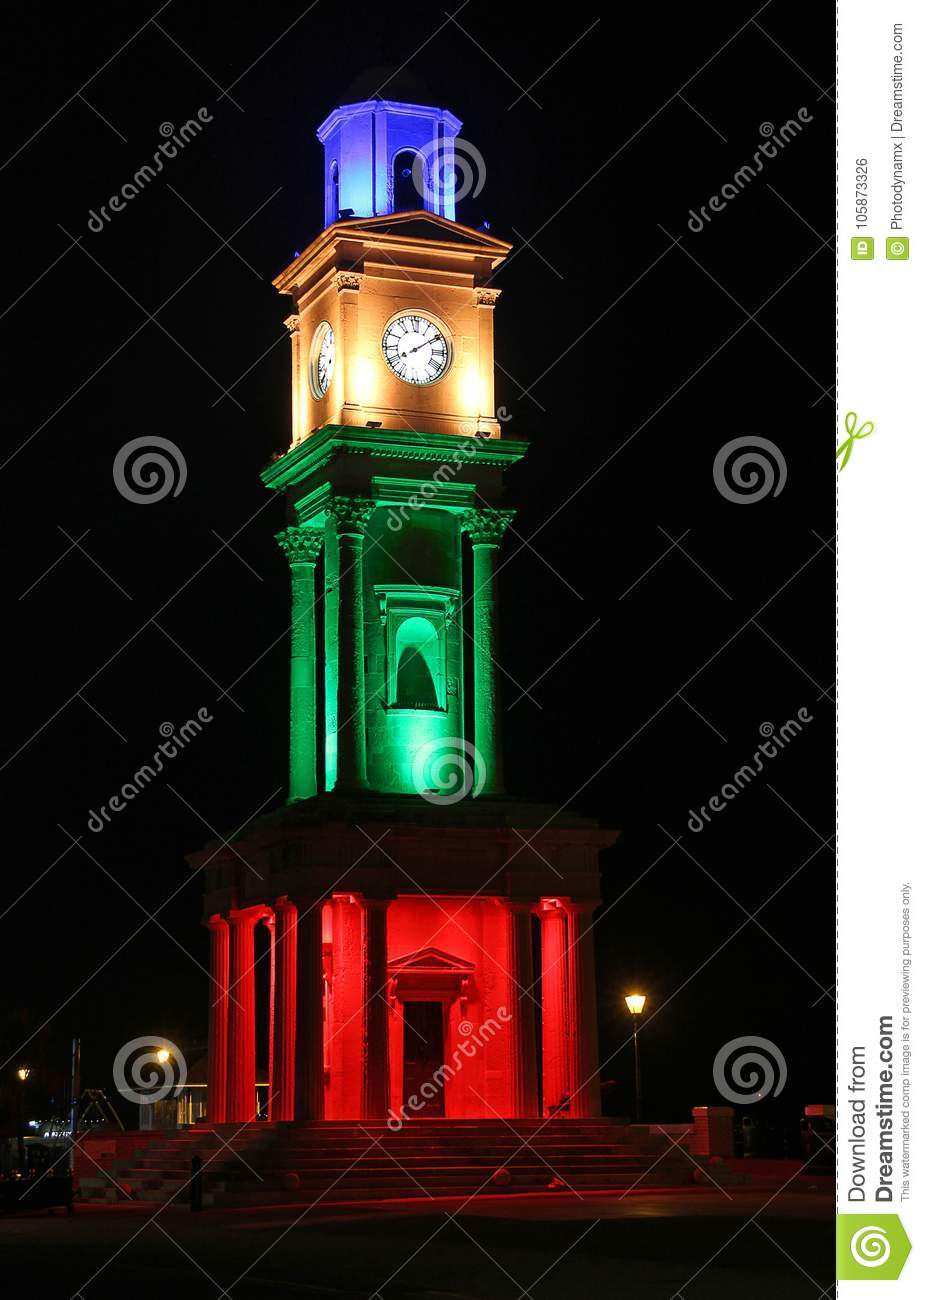 Historic victorian clock tower illuminated